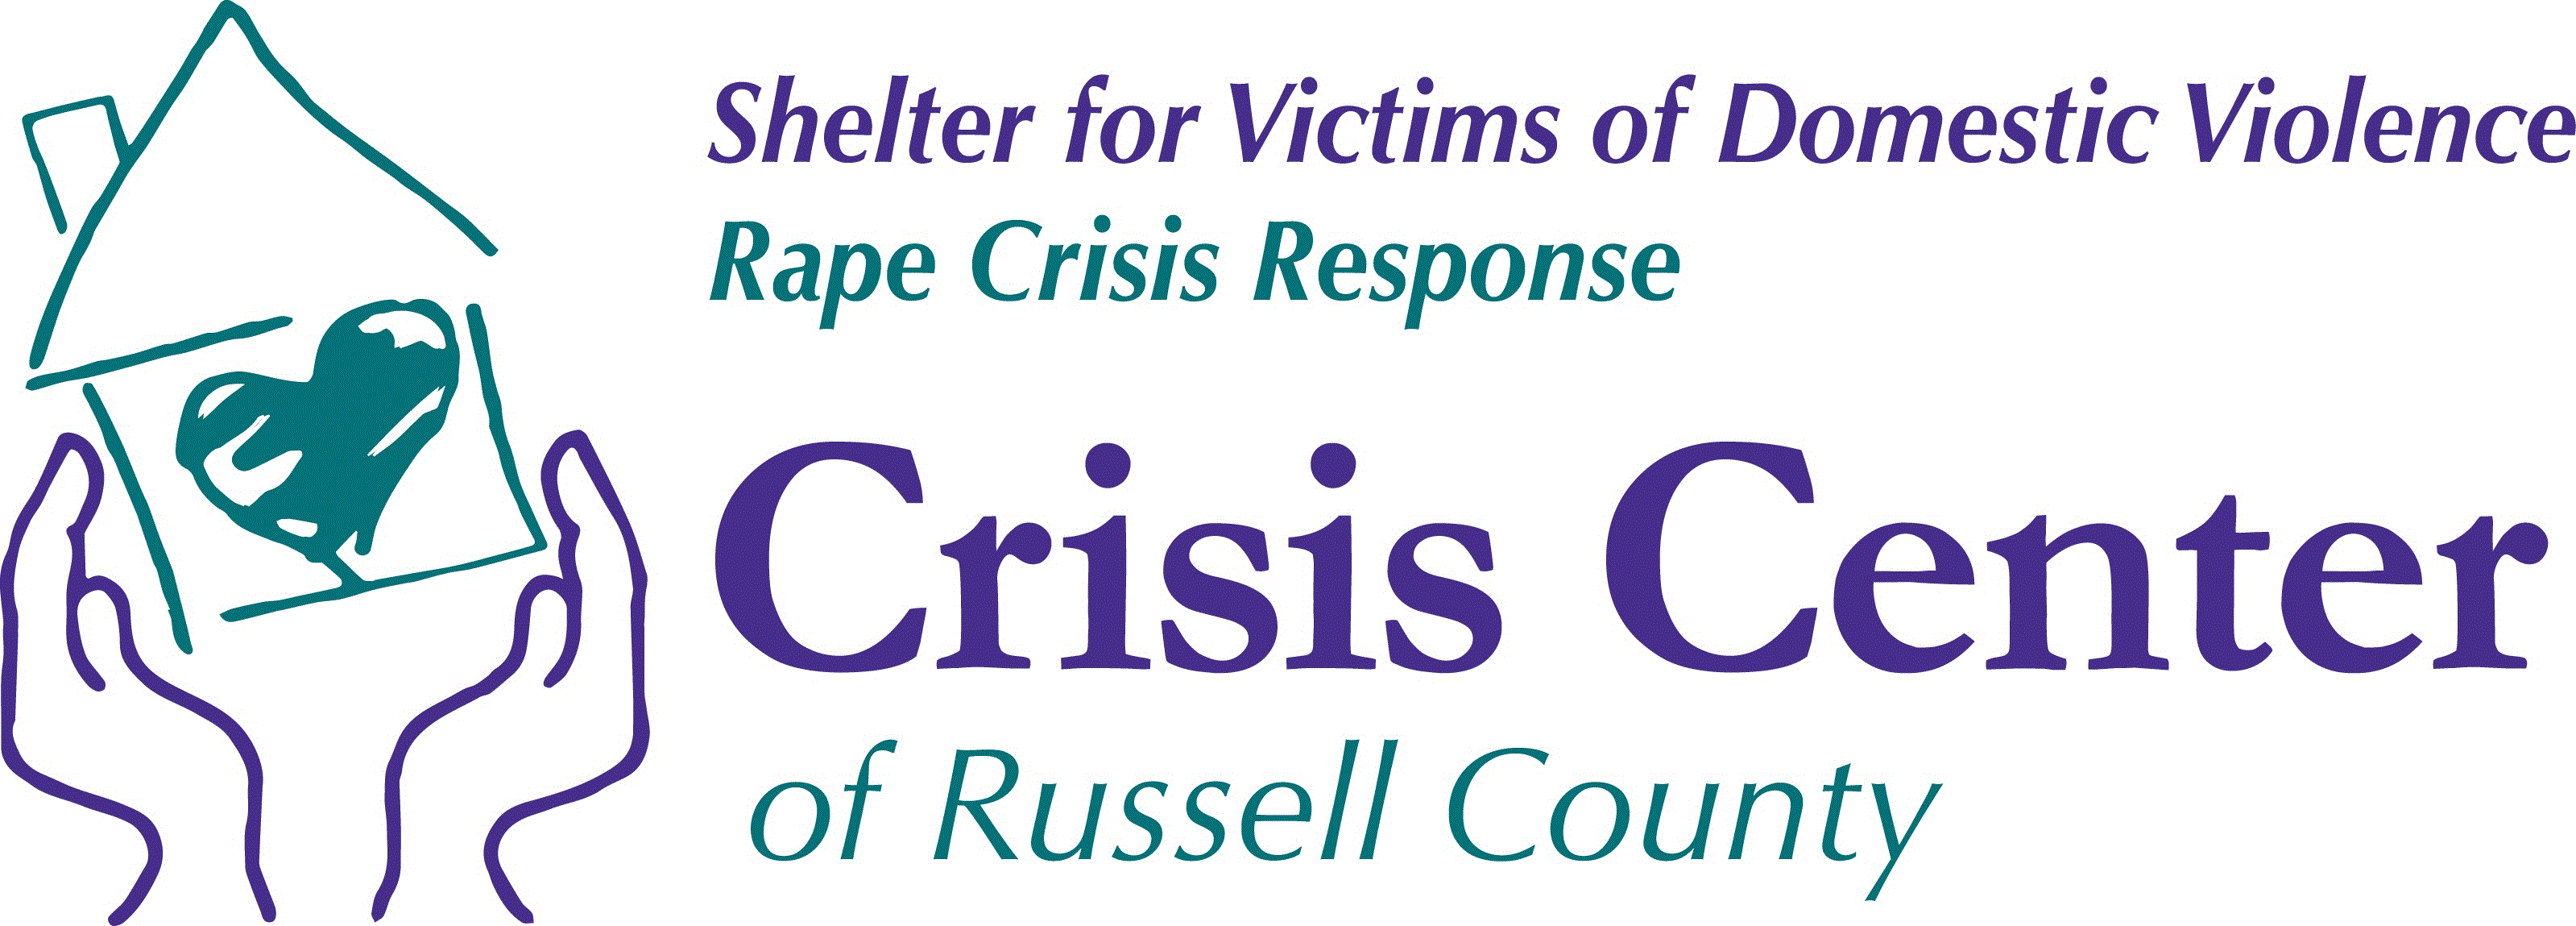 Crisis Center of Russell County